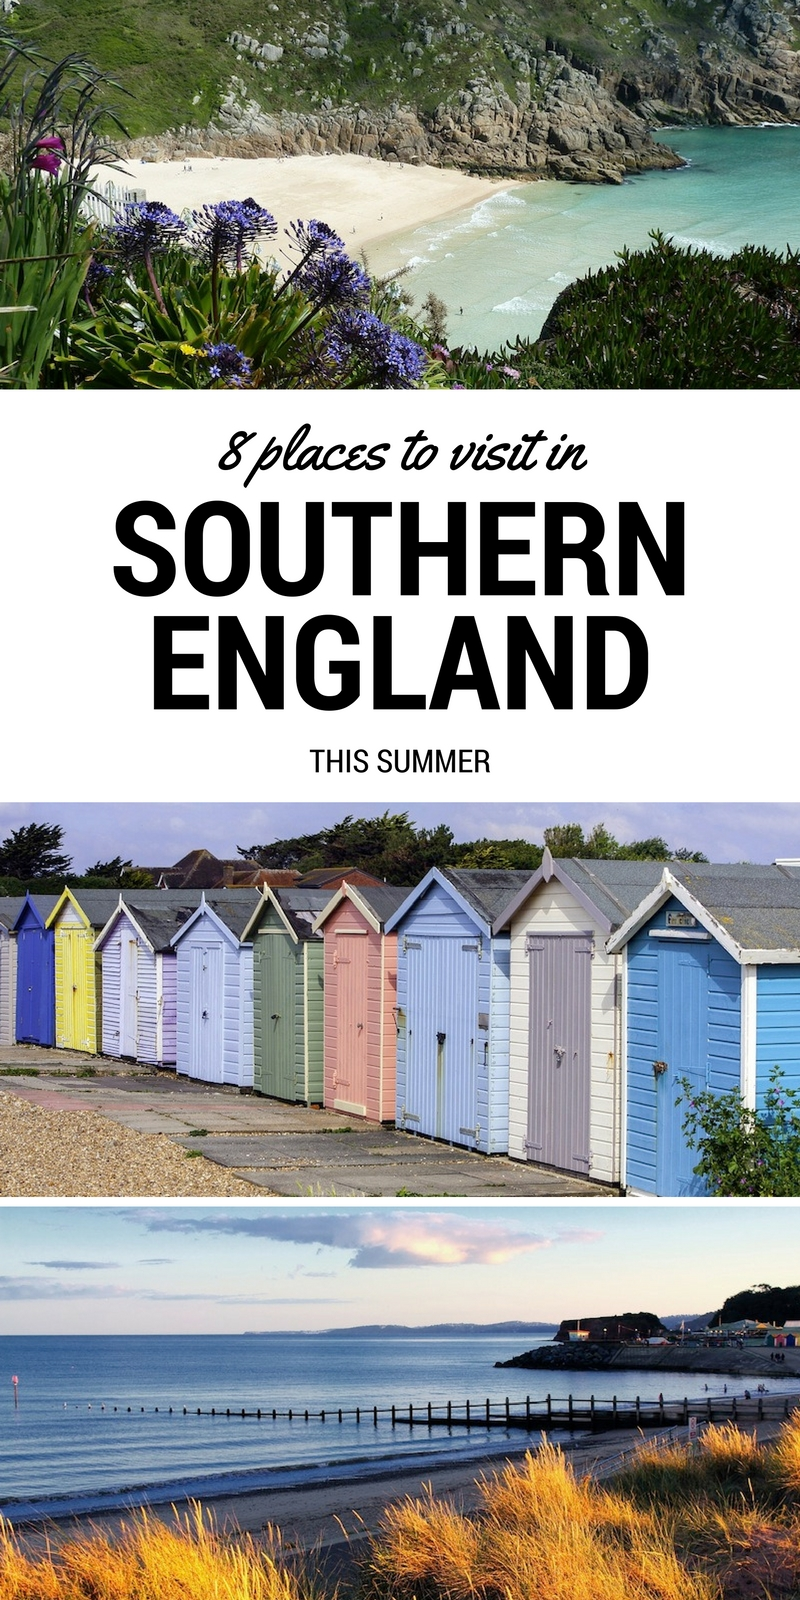 8 places to visit in Southern England